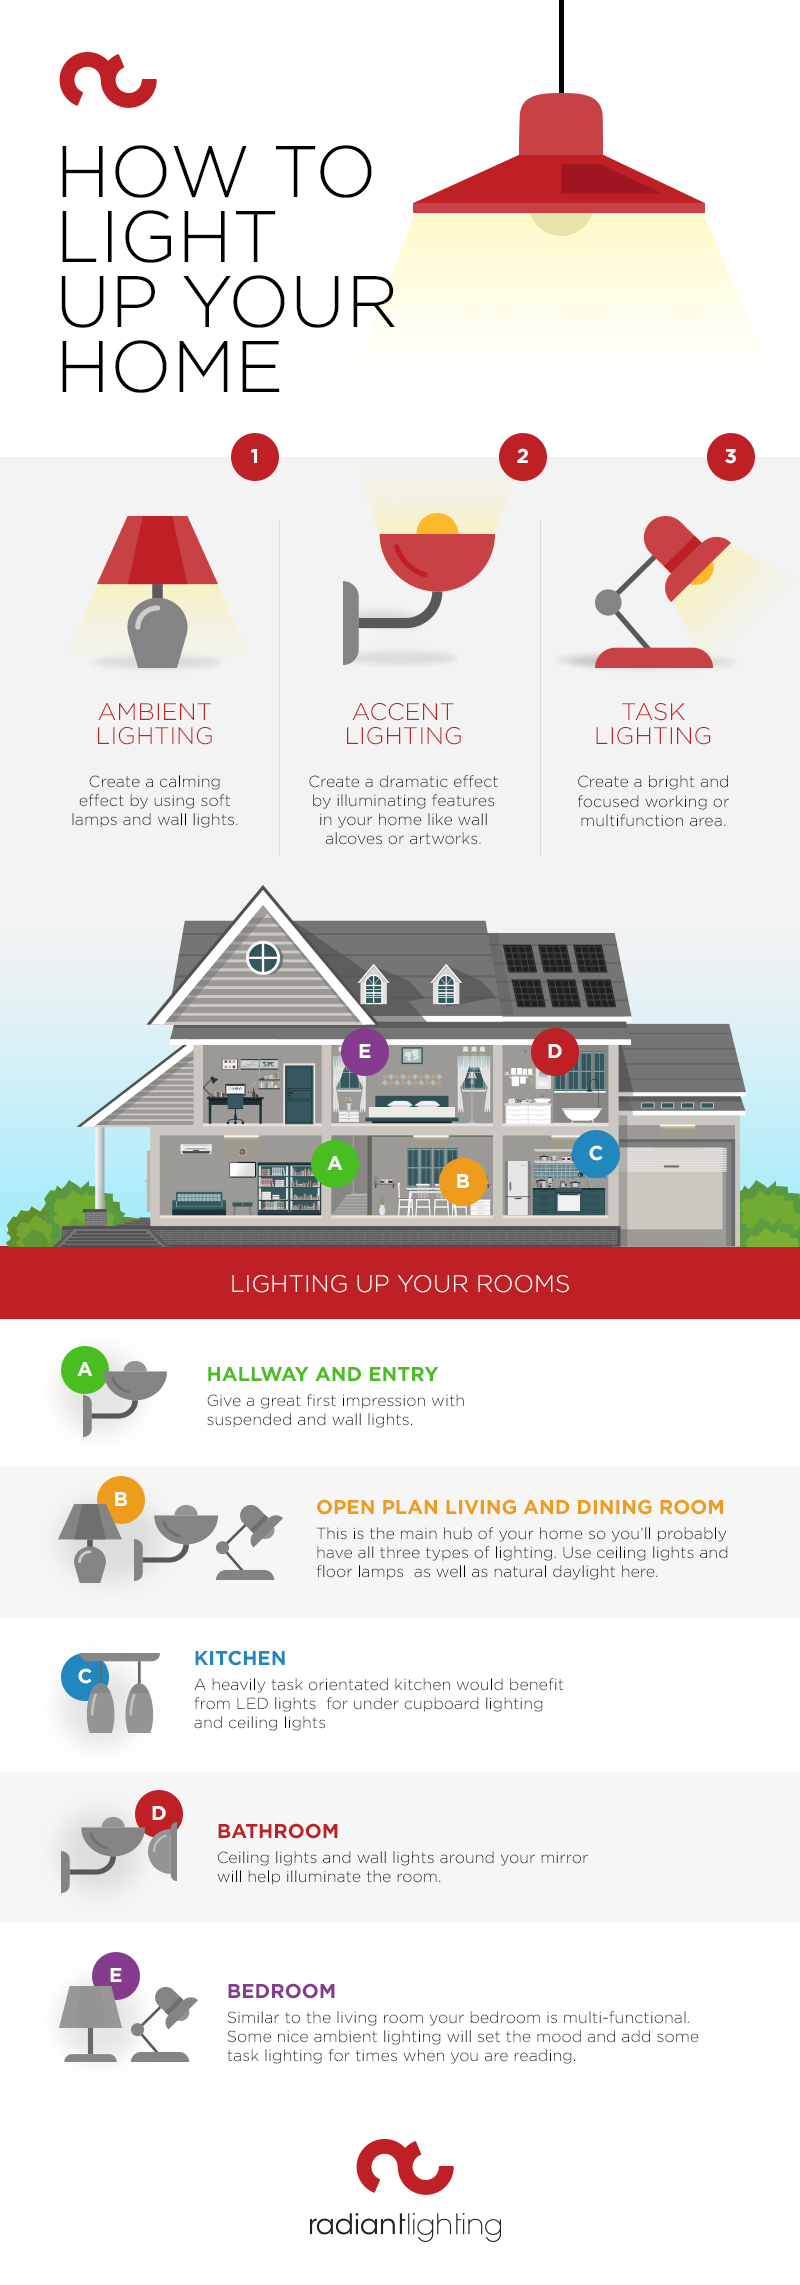 How to Light Up Your Home